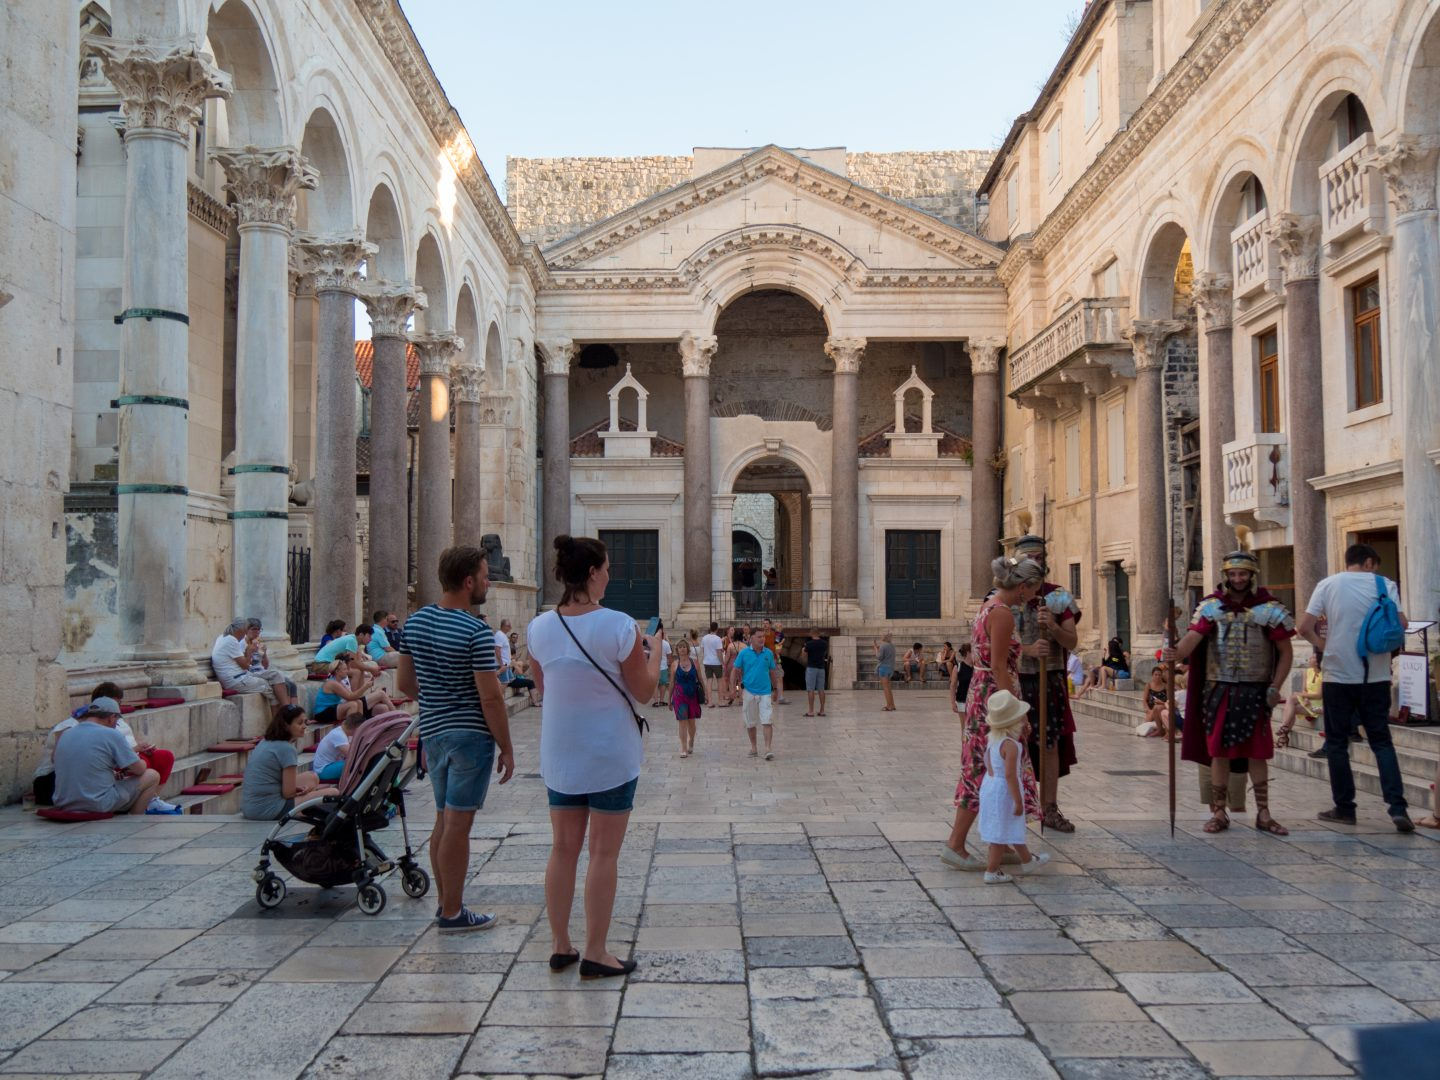 Things to do in Split – A definitive guide to activities and sights in the most beautiful city in the world